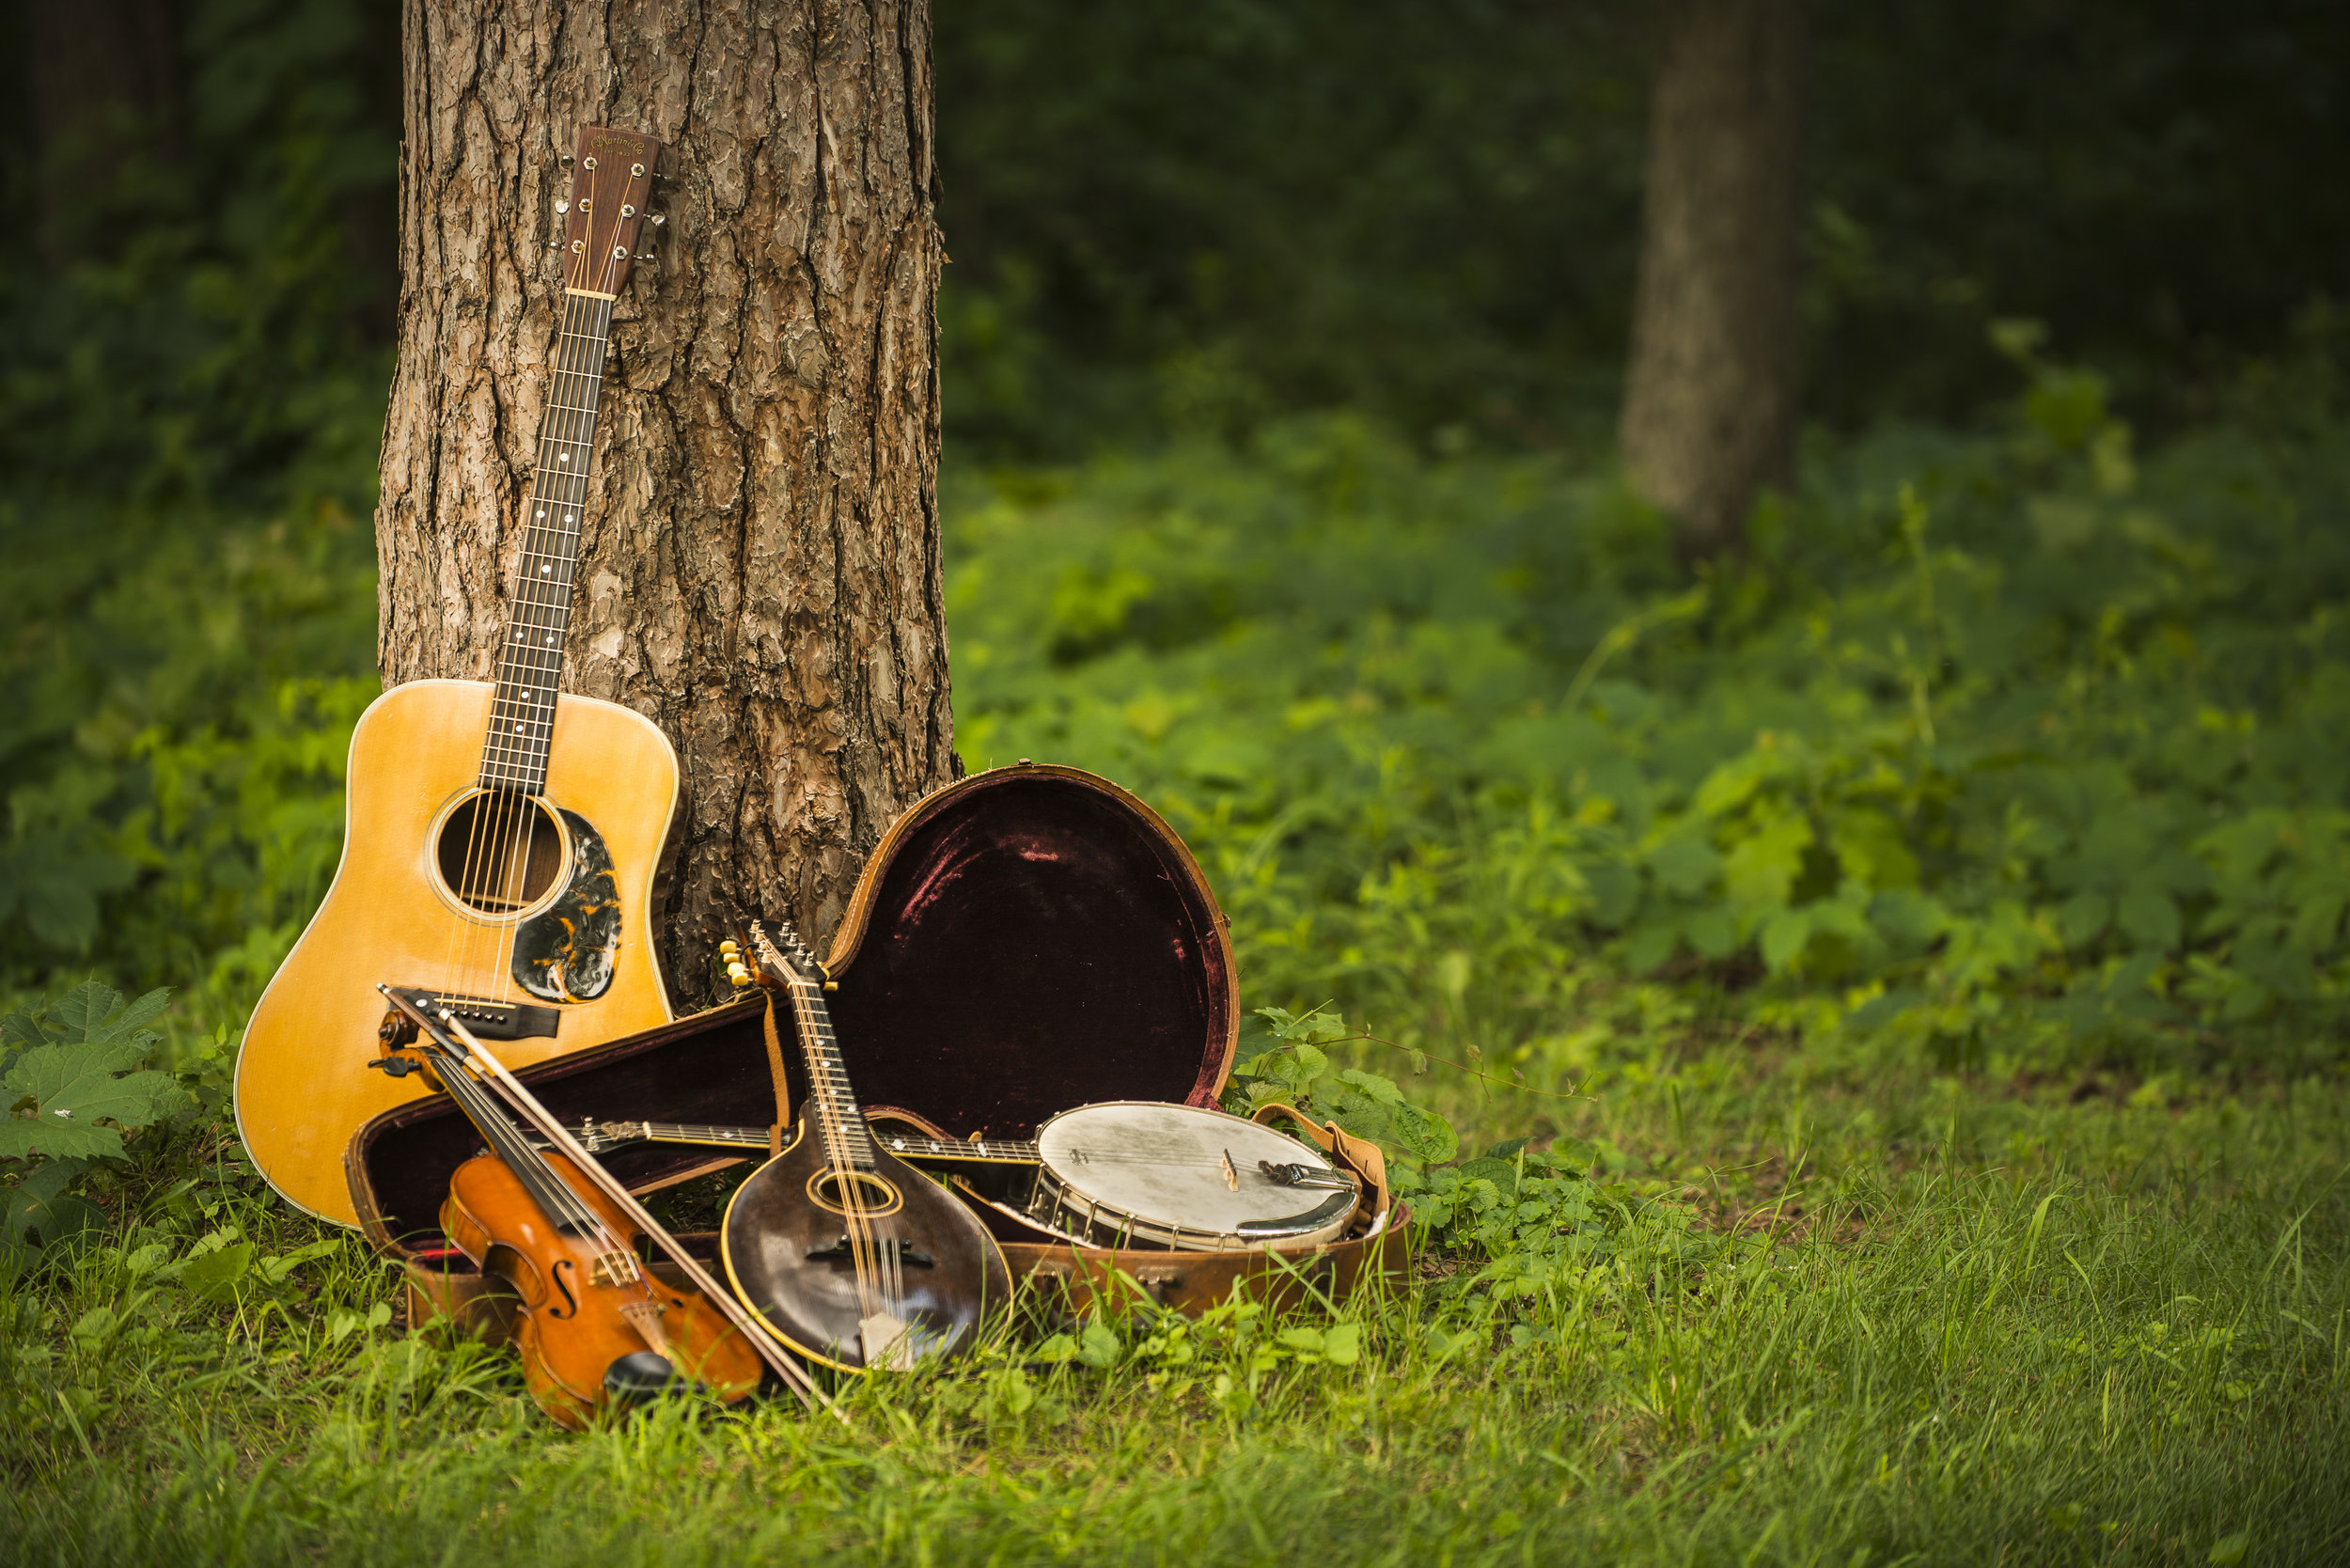 Music and Songs - We have several drums, percussion and string instruments we'll simply have fun with. The drums are a favorite!We'll learn songs like 'Come By the Hills', 'Love You', 'Whitethroat Song' and 'Little Bird'